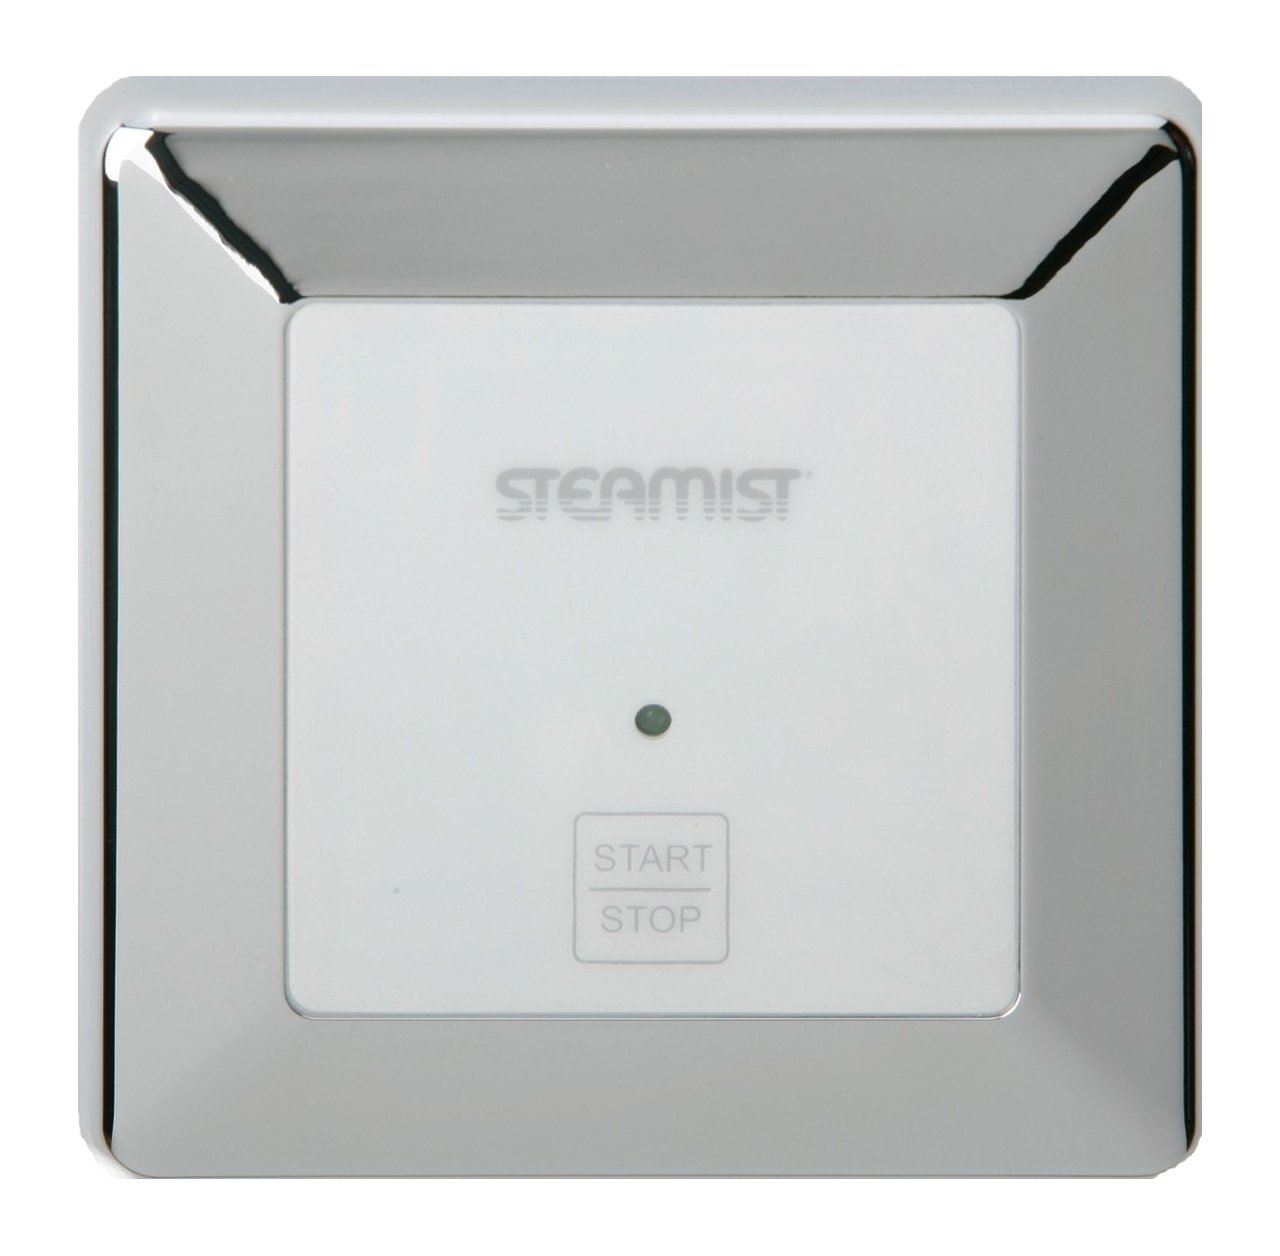 Steamist SMC-120-PC On/Off Control (Polished Chrome)